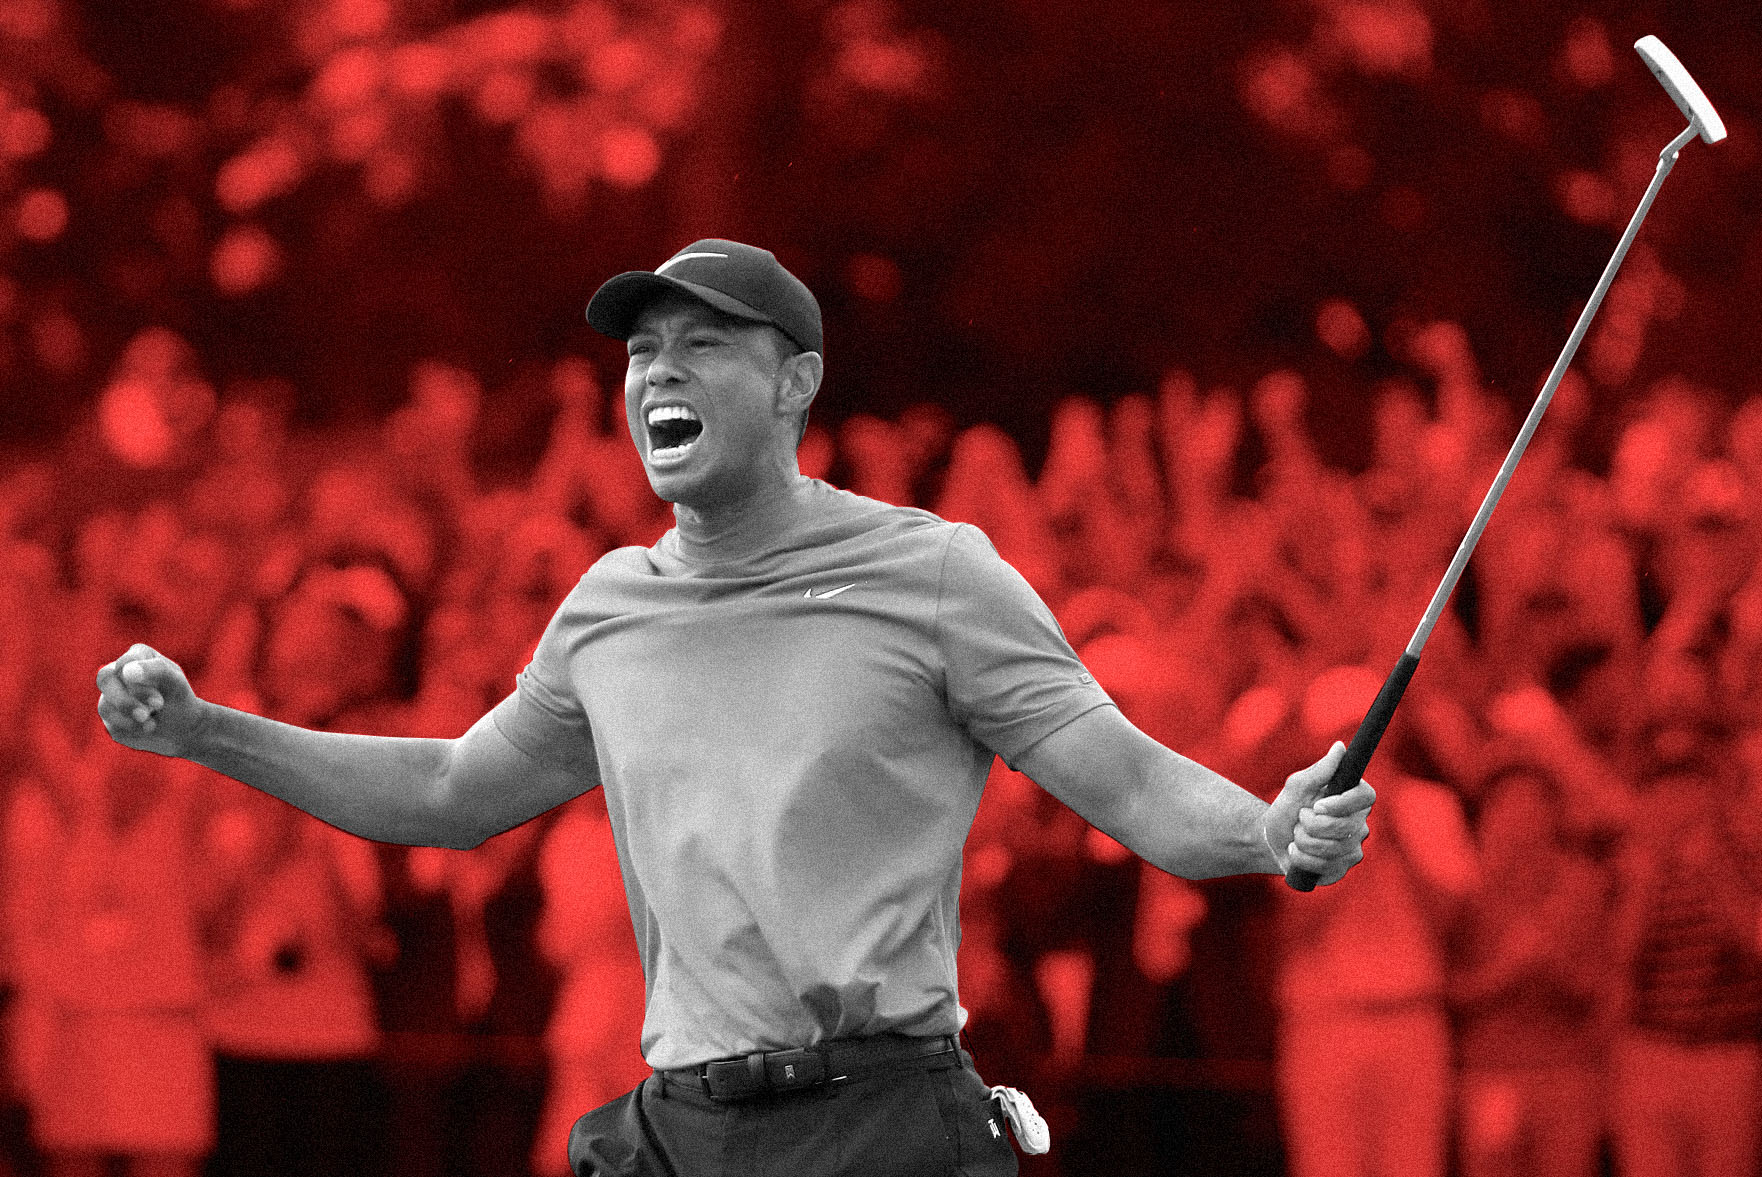 Tiger Woods celebrates on the 18th green after winning the Masters in 2019.